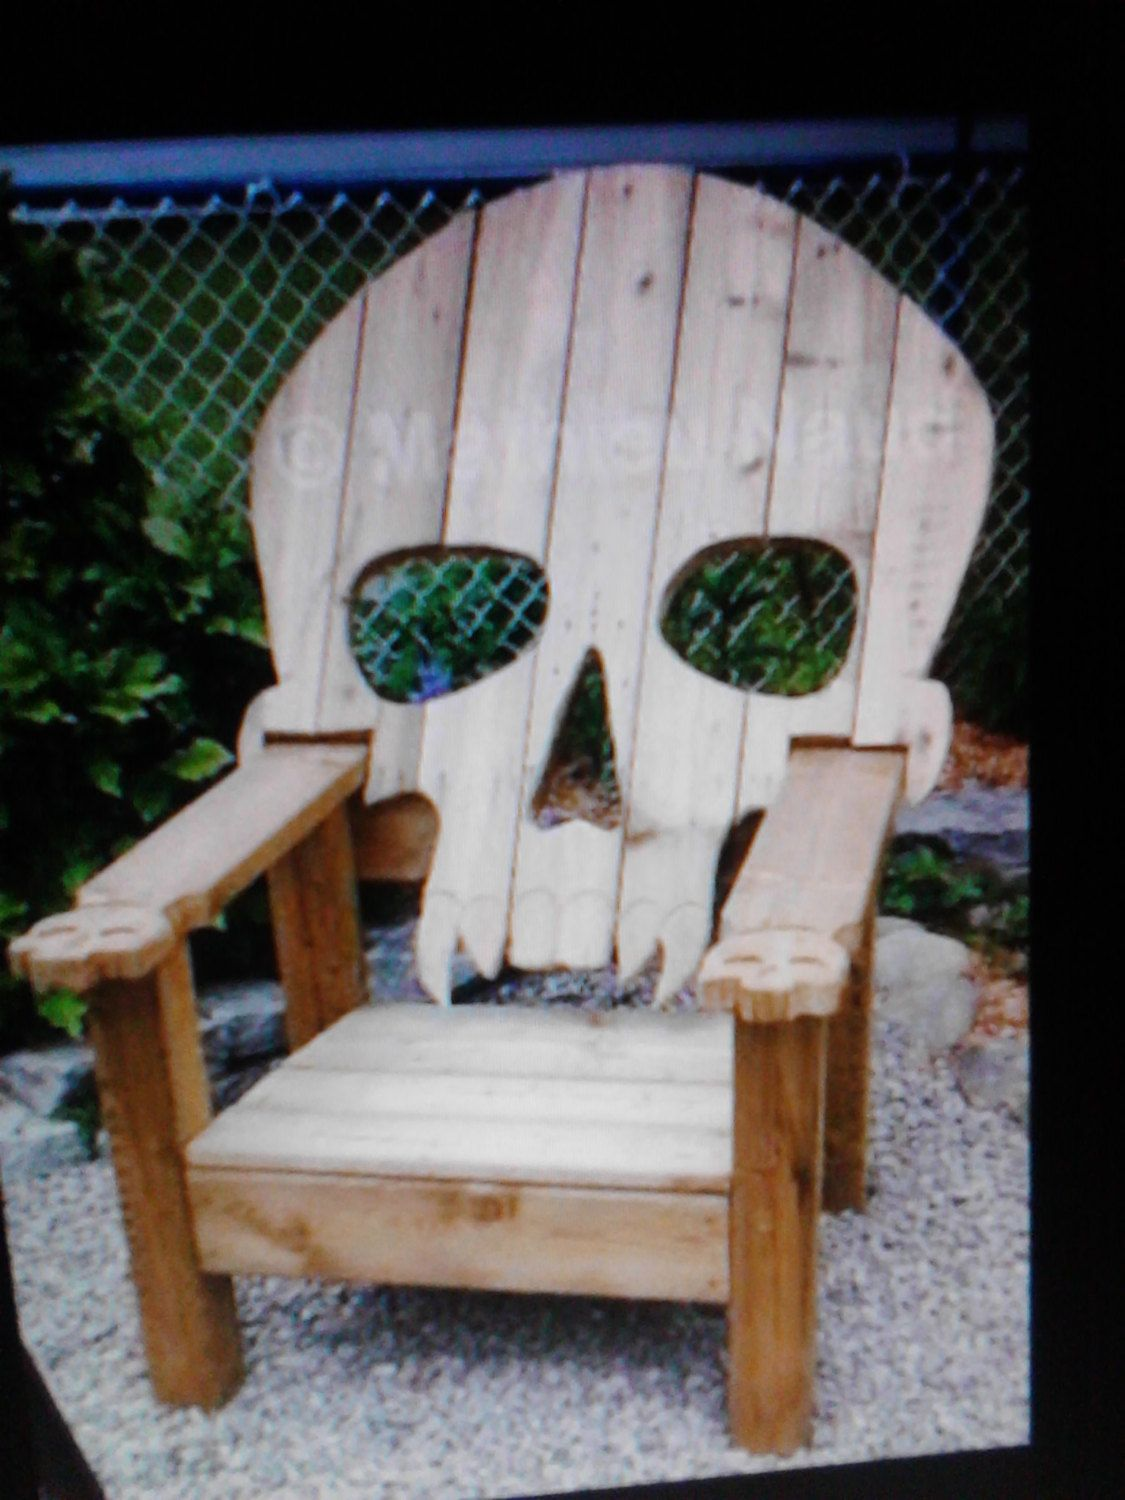 Skull Chair Glider Accessories Adirondack Yard Furniture Solid Wood By Emmanddoubleyas 129 00 Ricky Will Love This For His New Pad